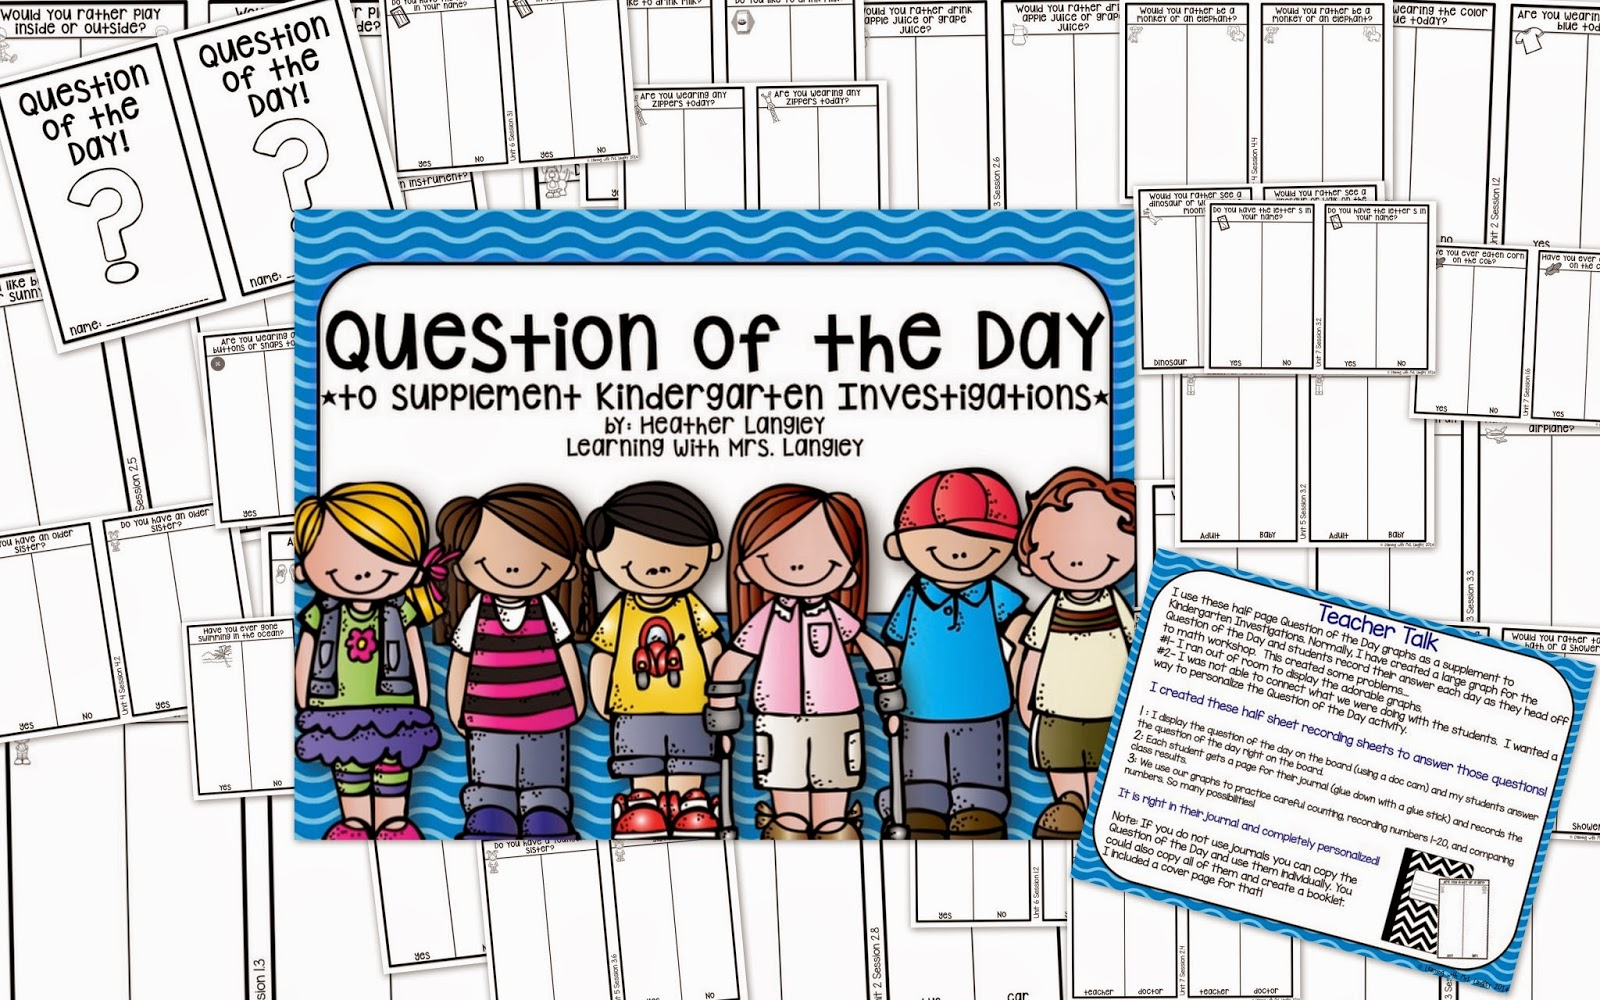 http://www.teacherspayteachers.com/Product/Question-of-the-Day-Kindergarten-Investigations-Supplement-1530722